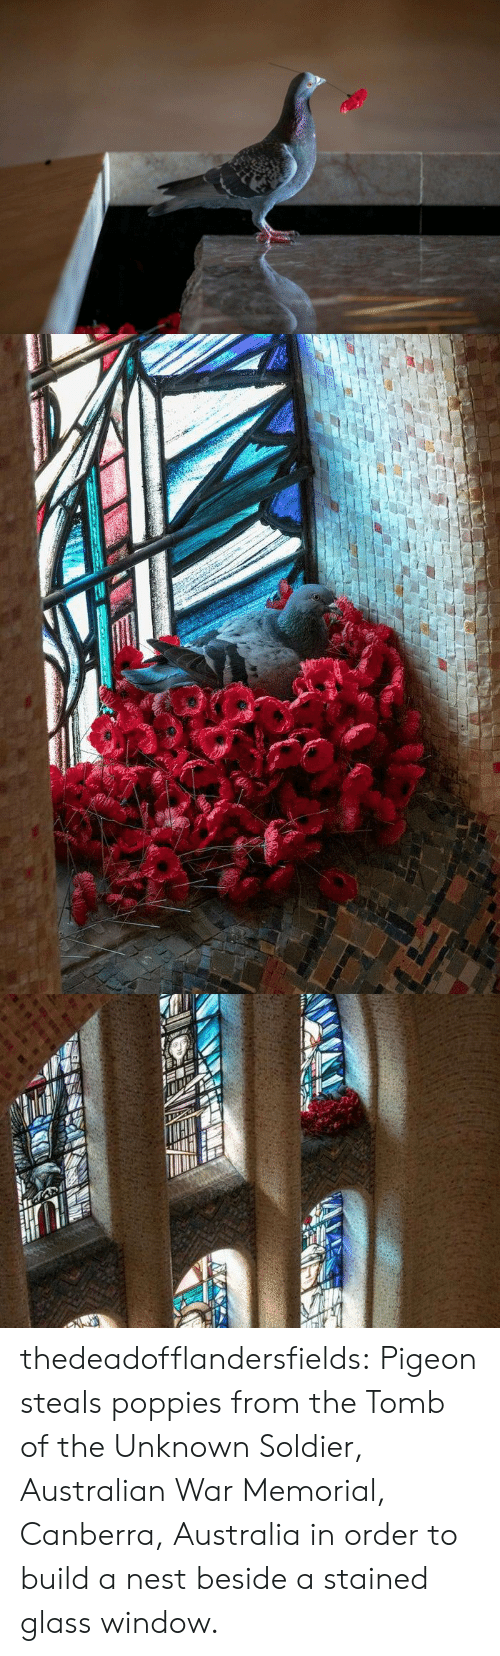 build a: thedeadofflandersfields:  Pigeon steals poppies from the Tomb of the Unknown Soldier, Australian War Memorial, Canberra, Australia in order to build a nest beside a stained glass window.